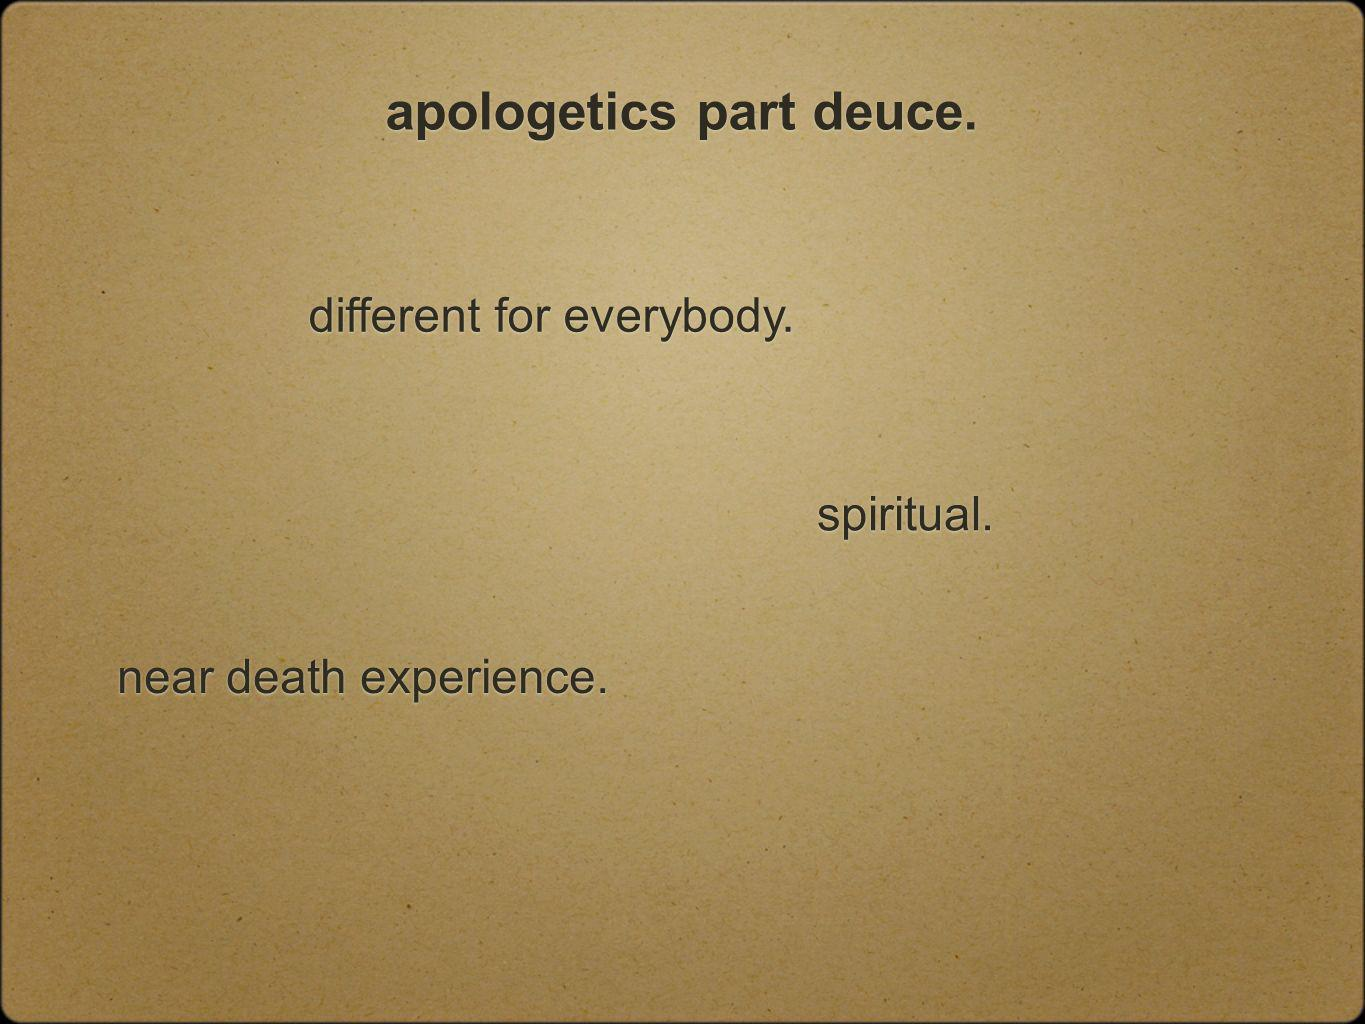 apologetics part deuce. different for everybody. spiritual. near death experience.